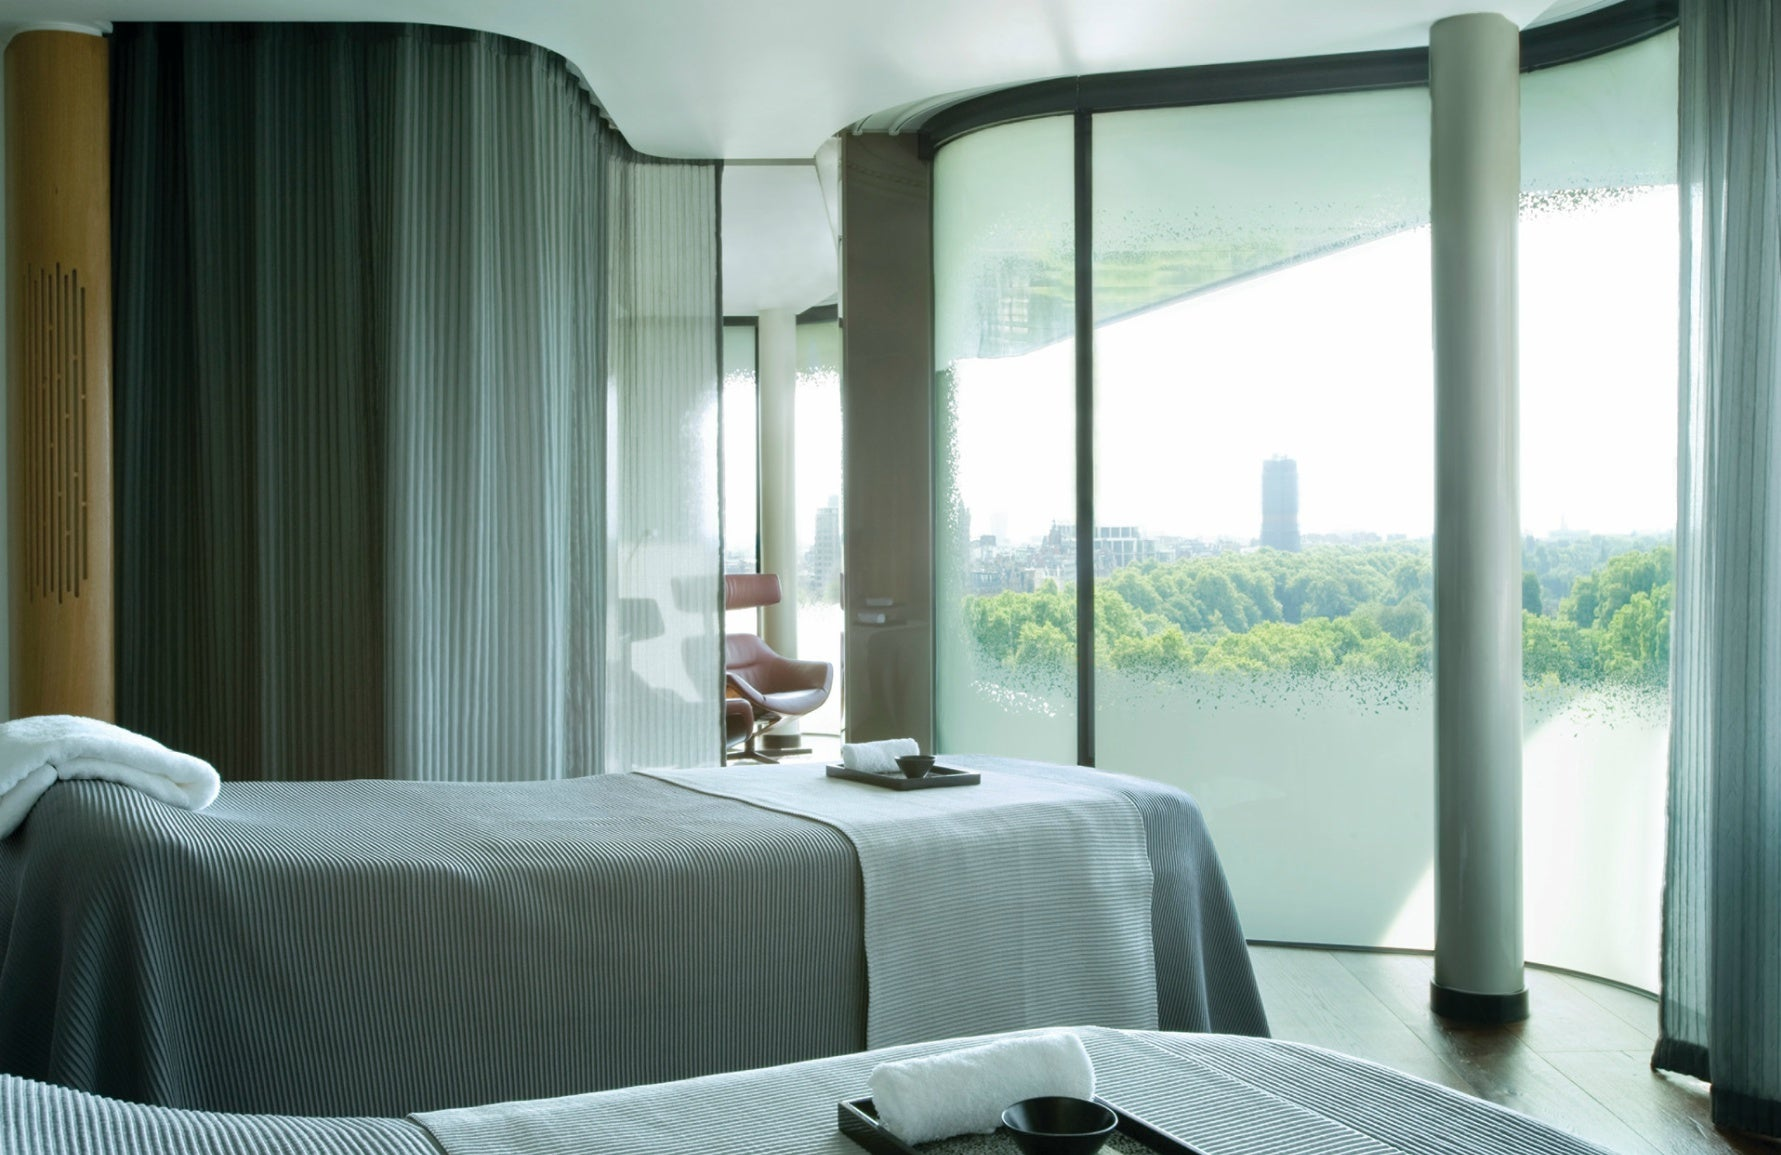 Best Spa In London | The Spa at Four Seasons Hotel London at Park Lane | London Spa Hotel | Read more in The Luxurist at LuxDeco.com